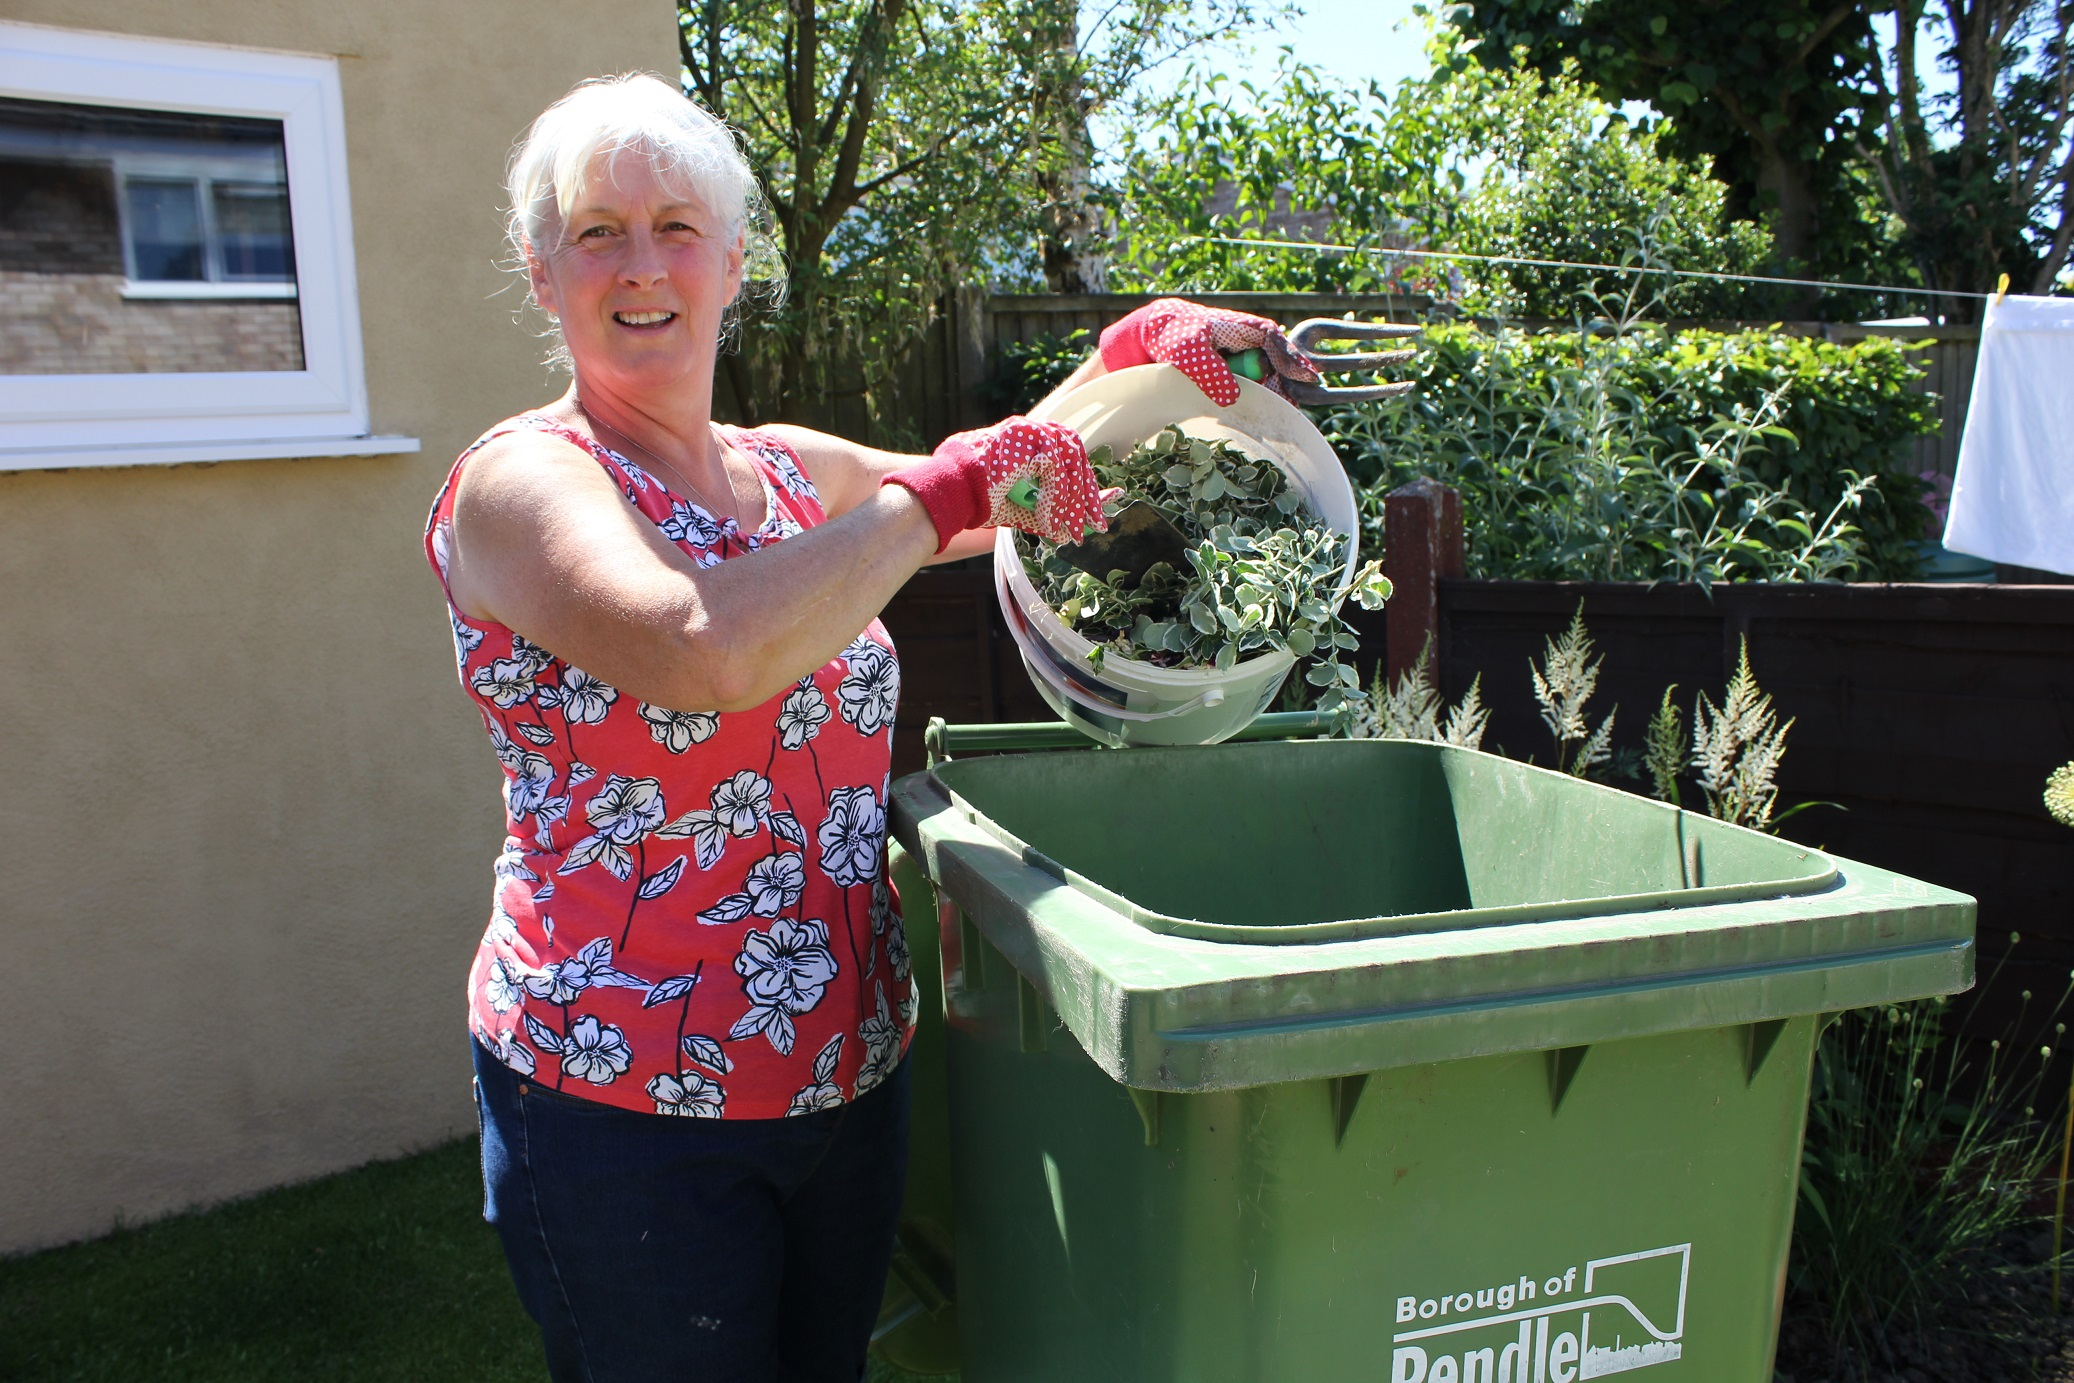 Not too late for gardeners to go green for Pendle!